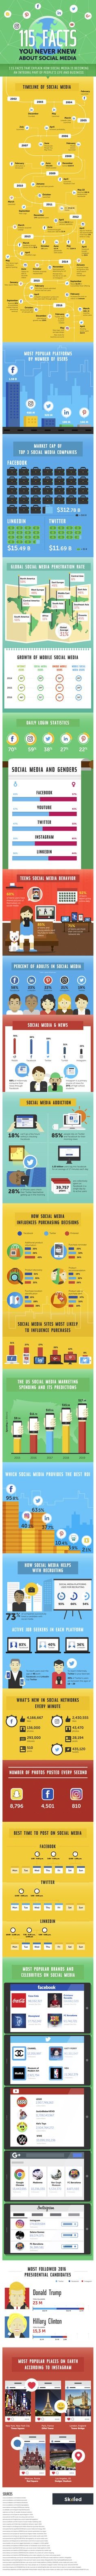 What Are 115 Facts That Explain How Social Media Is Becoming An Integral Part Of People's Life And Business? #infographic